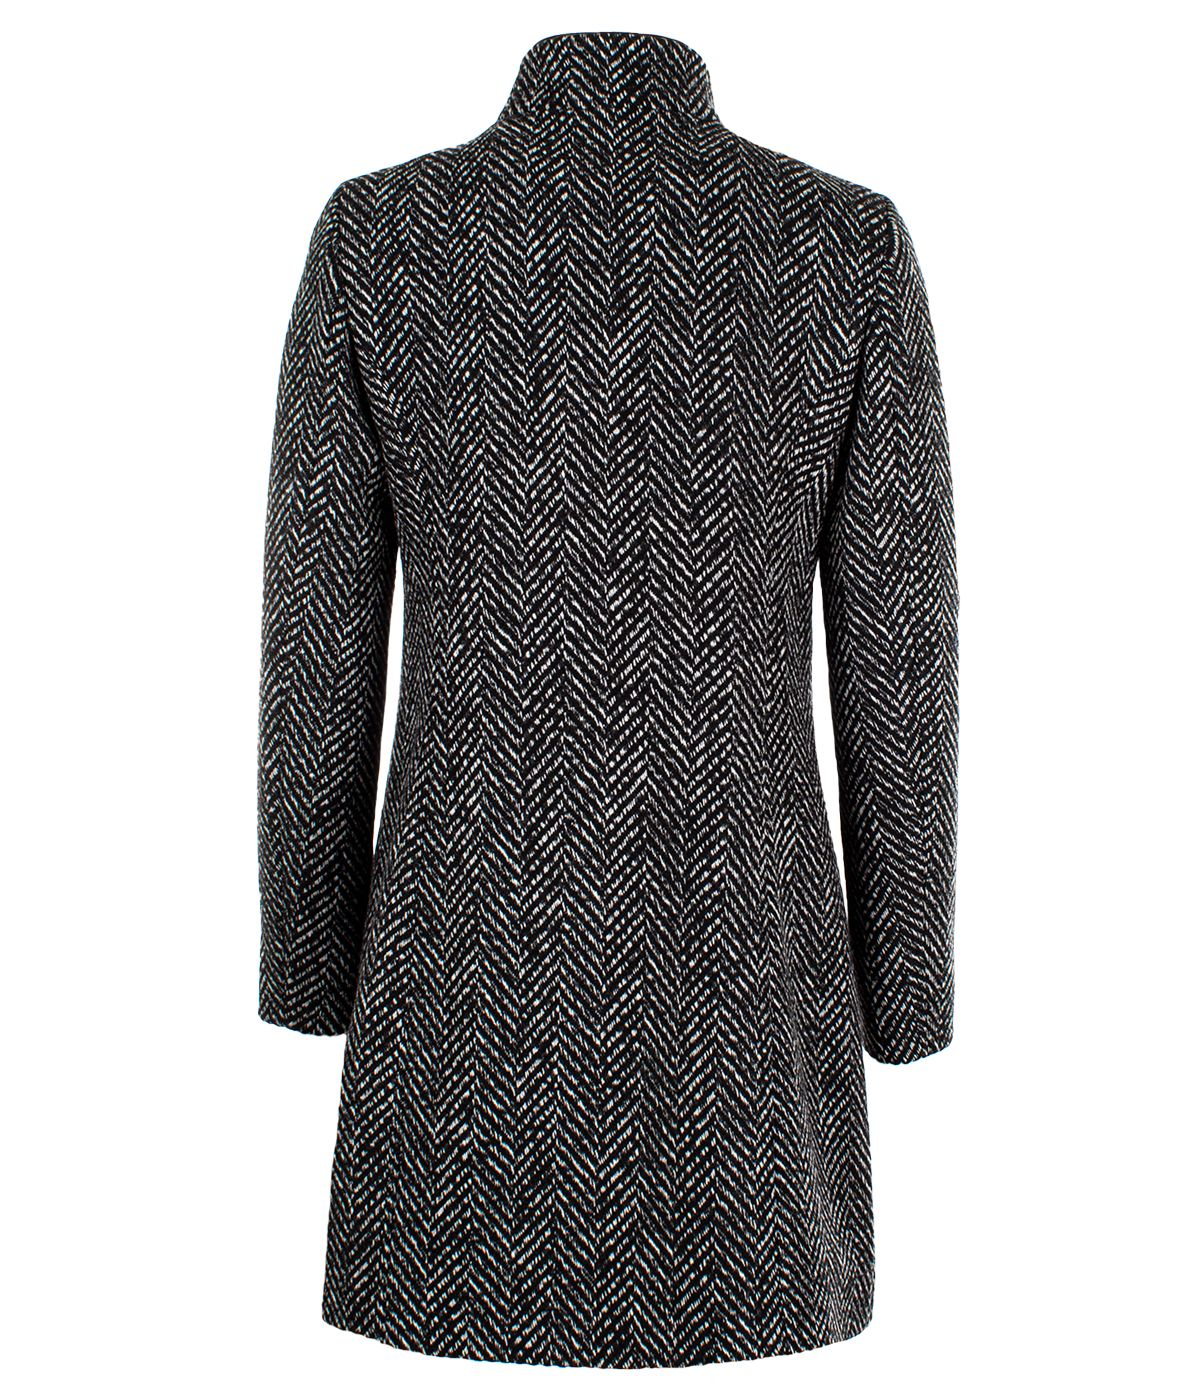 Wool coat herringbone, zip fastening 1